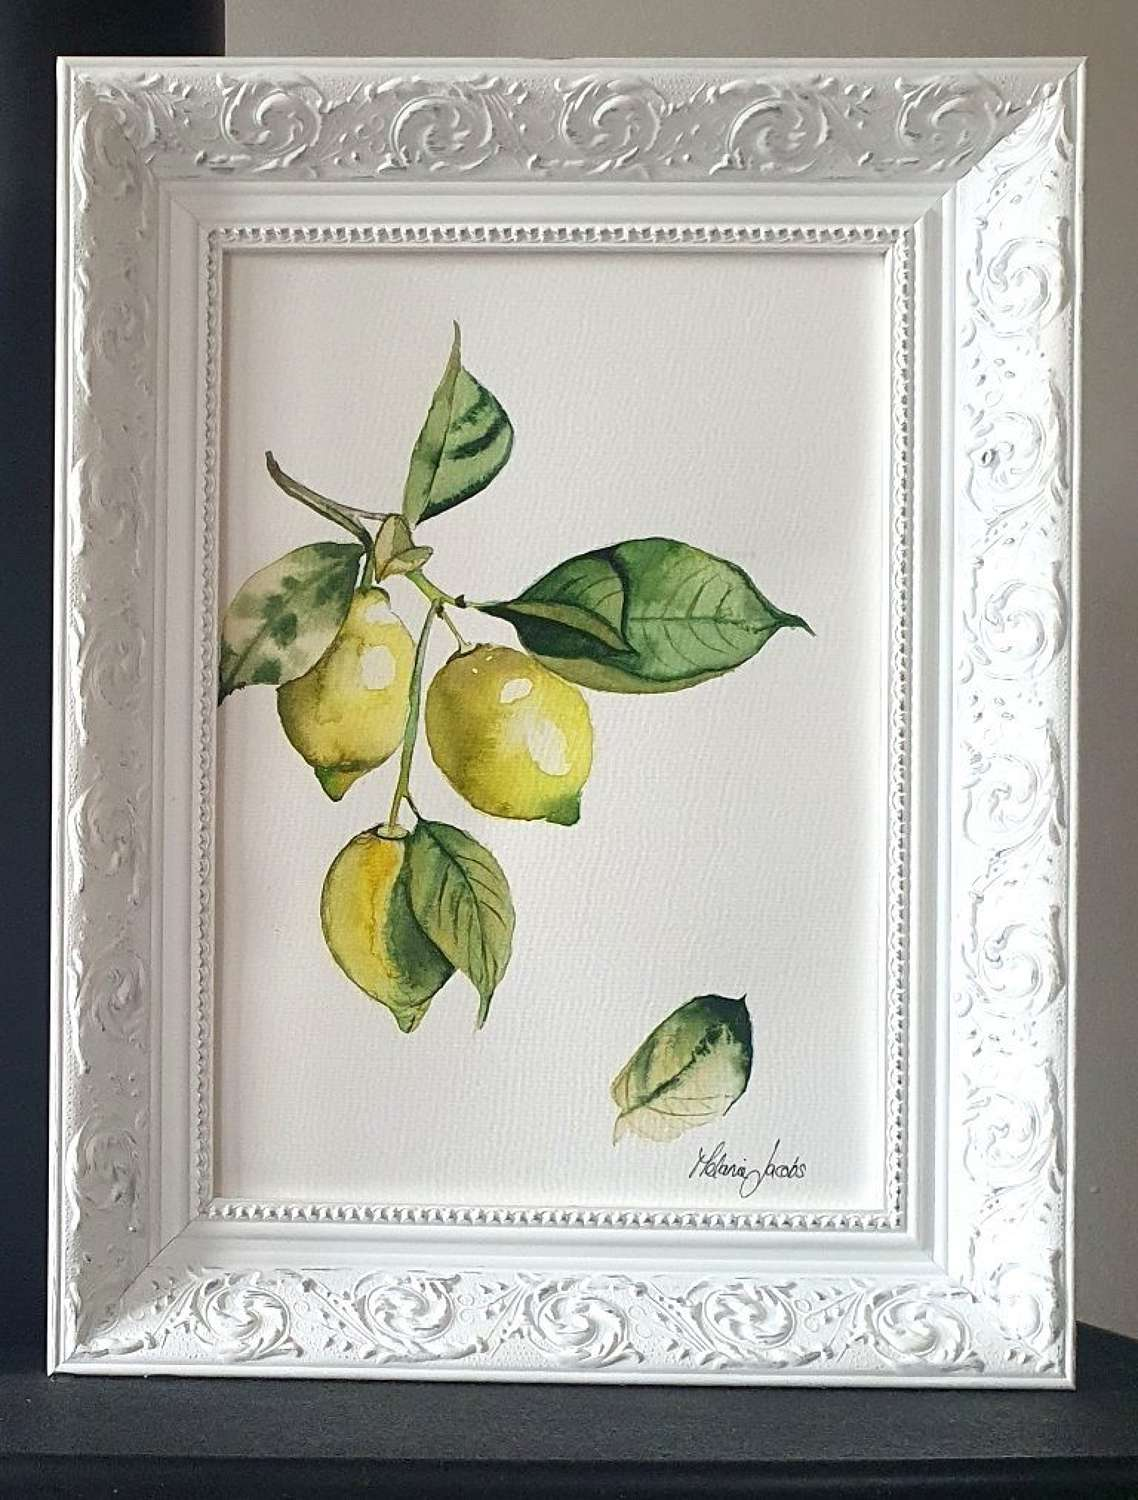 When Life Gives You Lemons II Original Painting by Melanie Jacobs